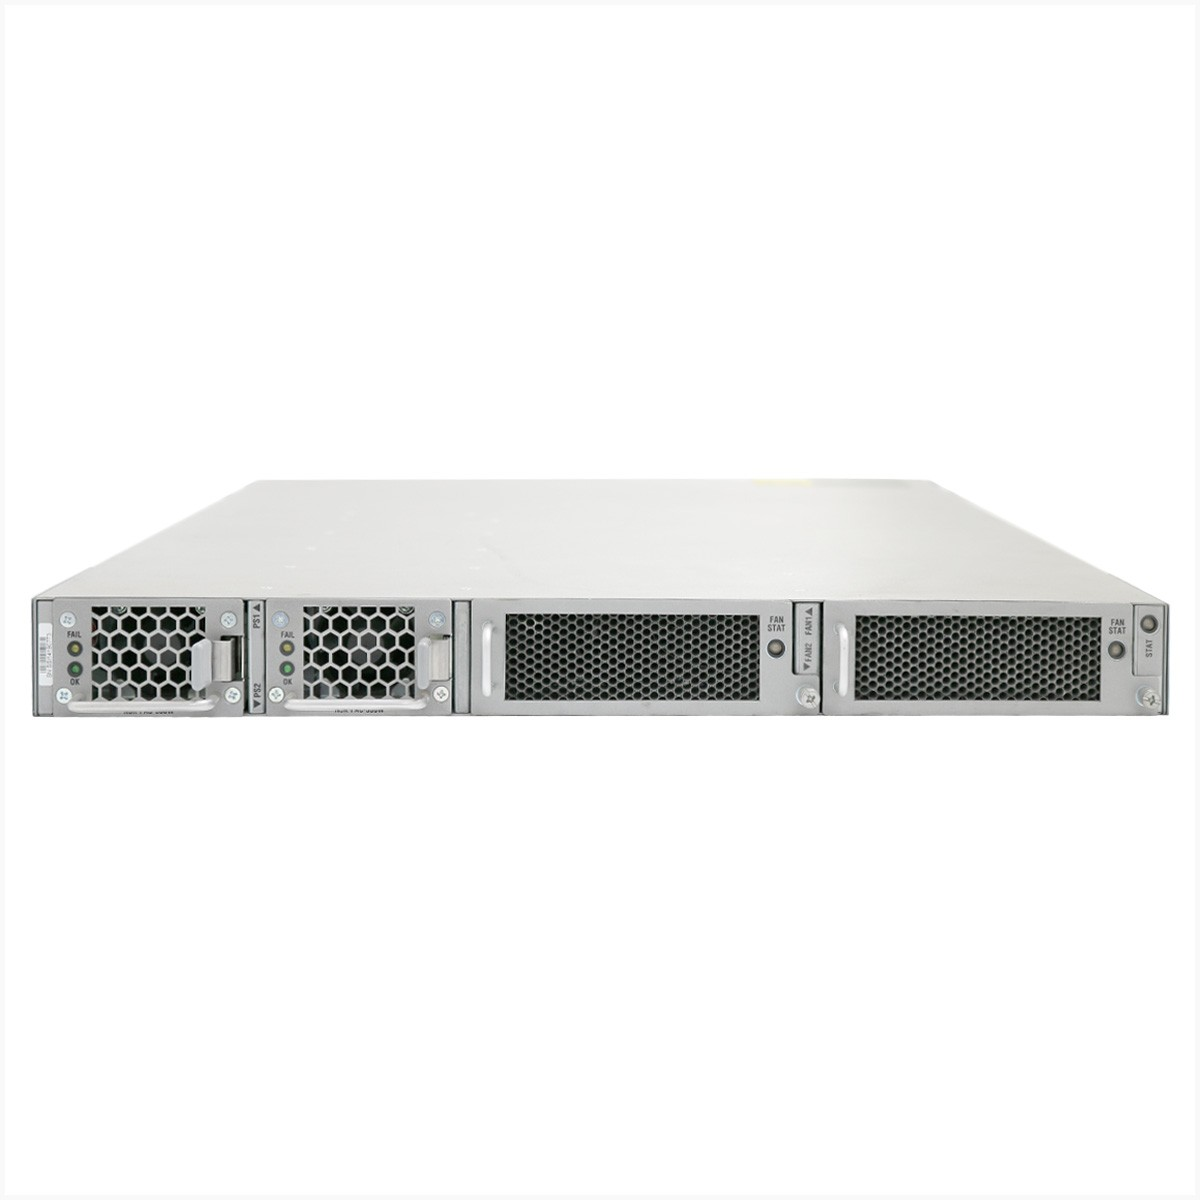 Switch cisco n5k-c5010p-bf 20 portas - usado